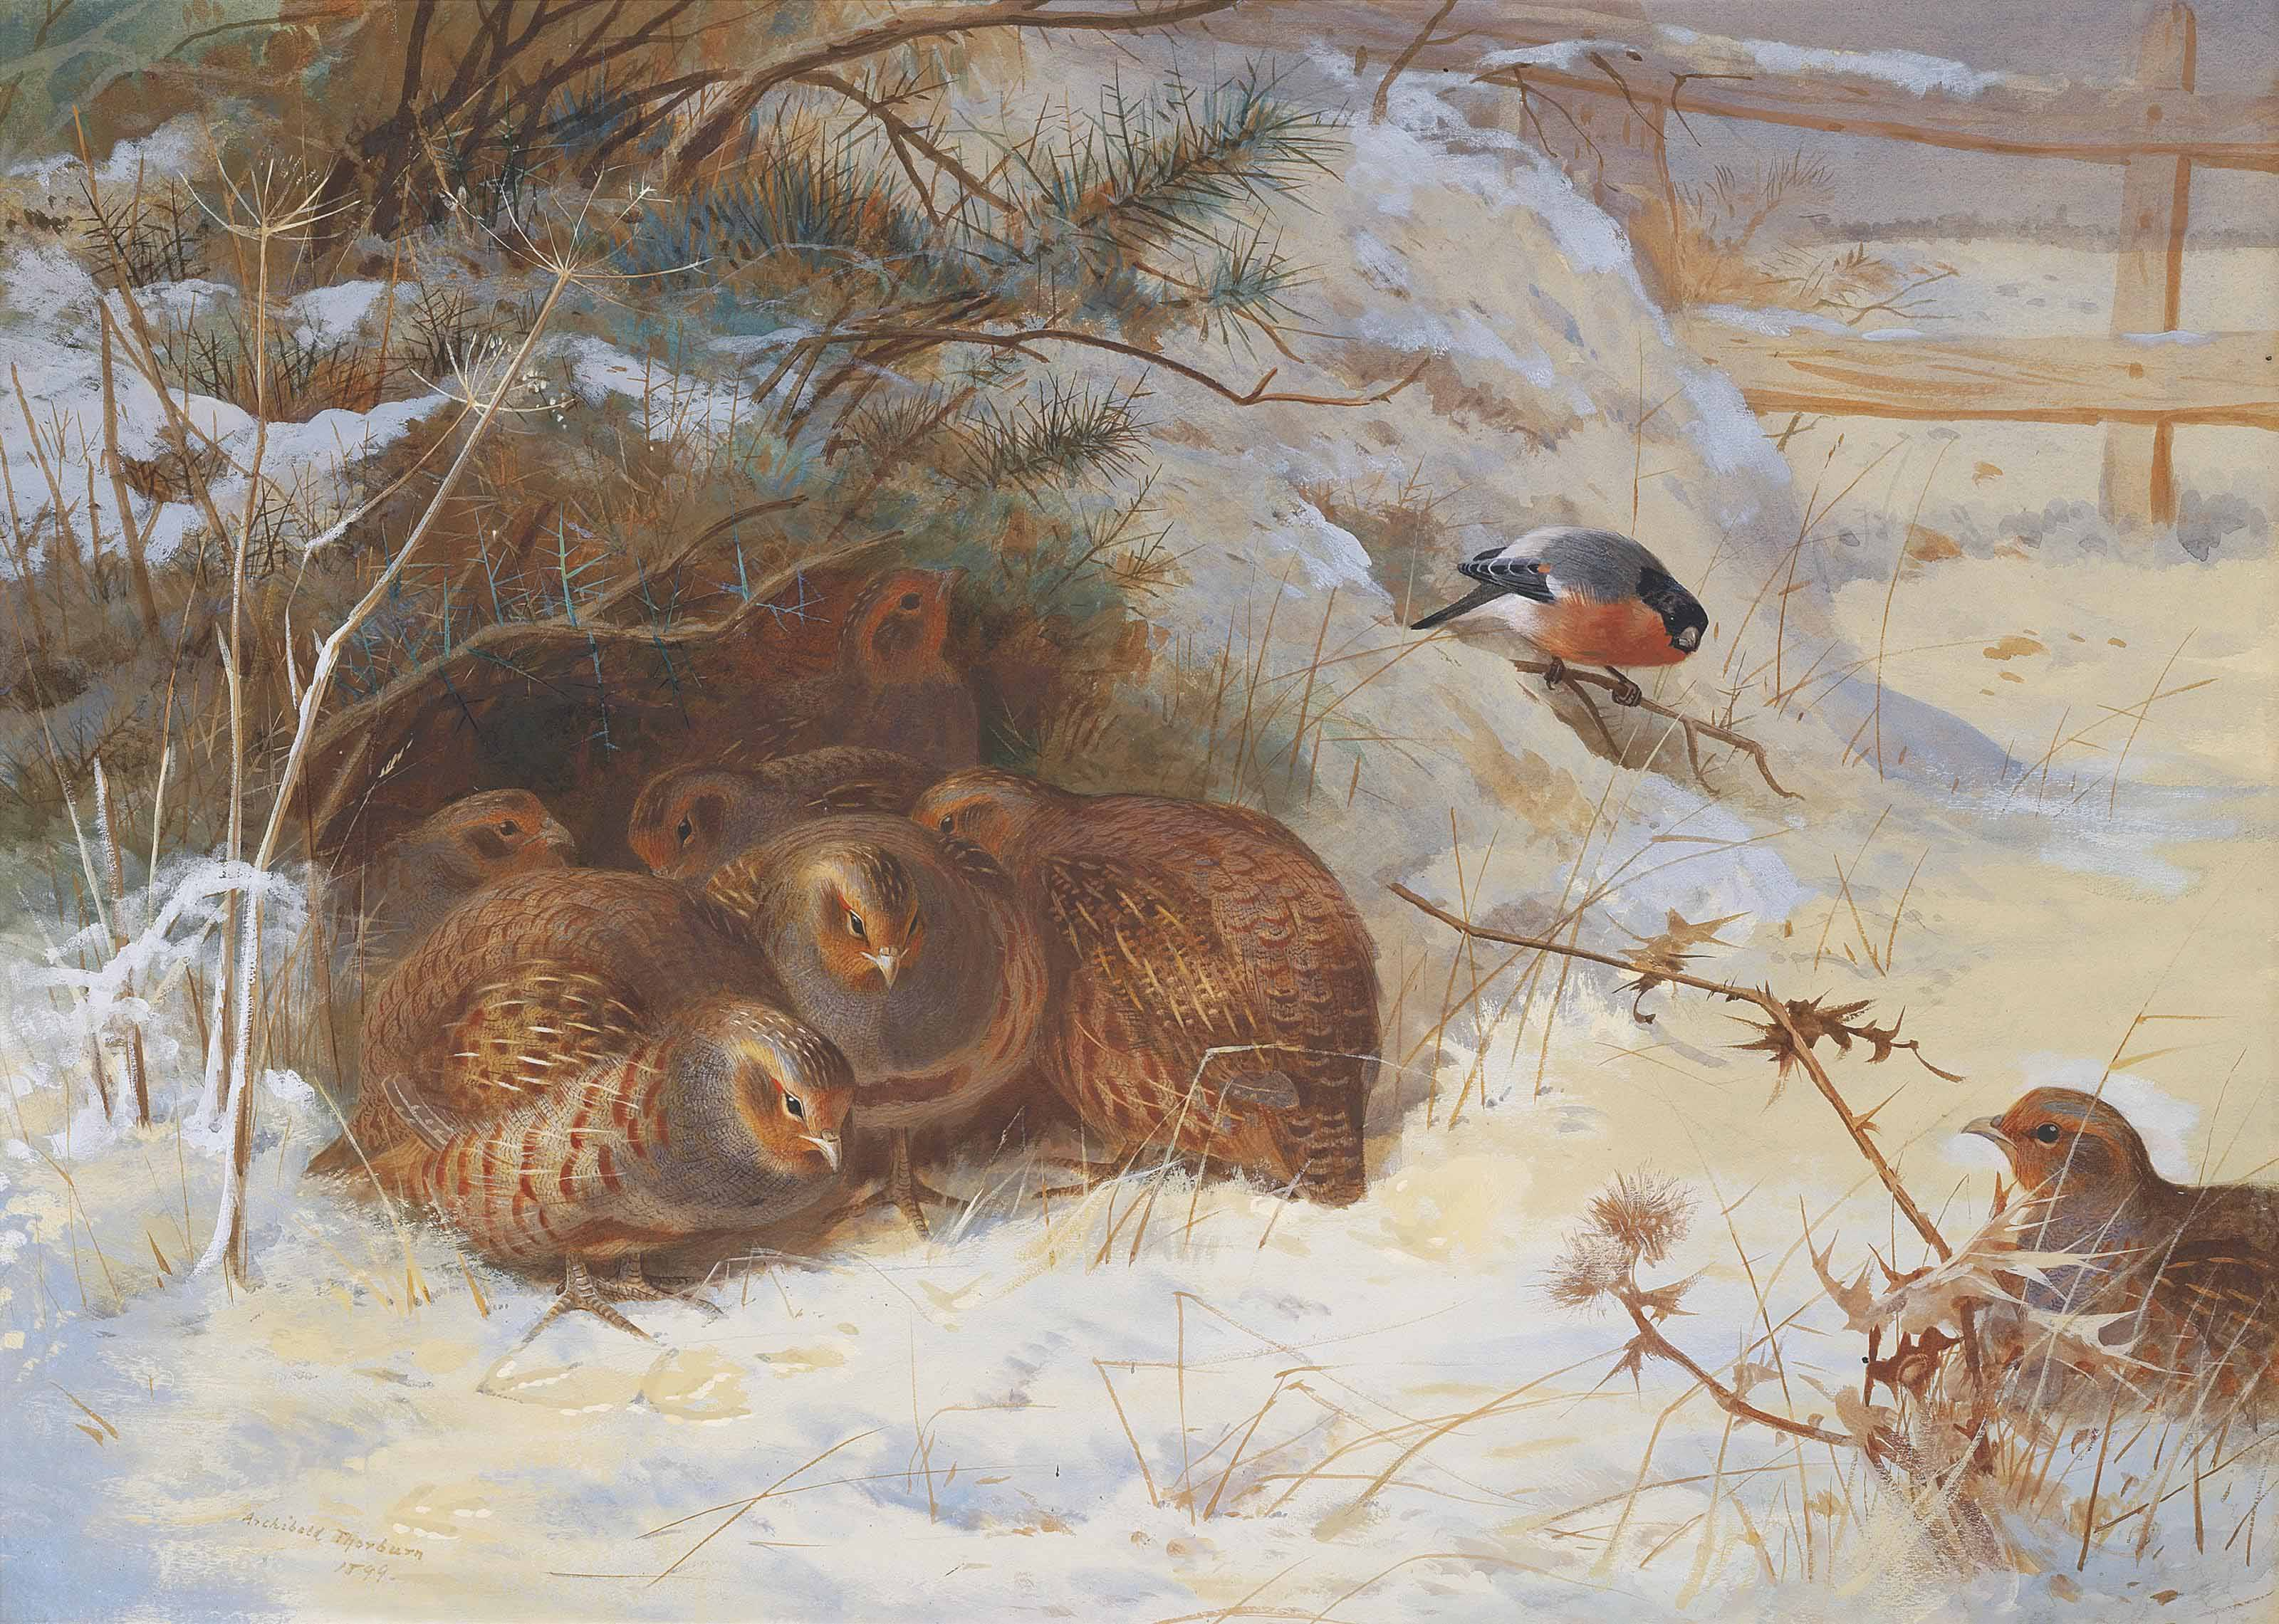 Partridge and a bullfinch in the snow